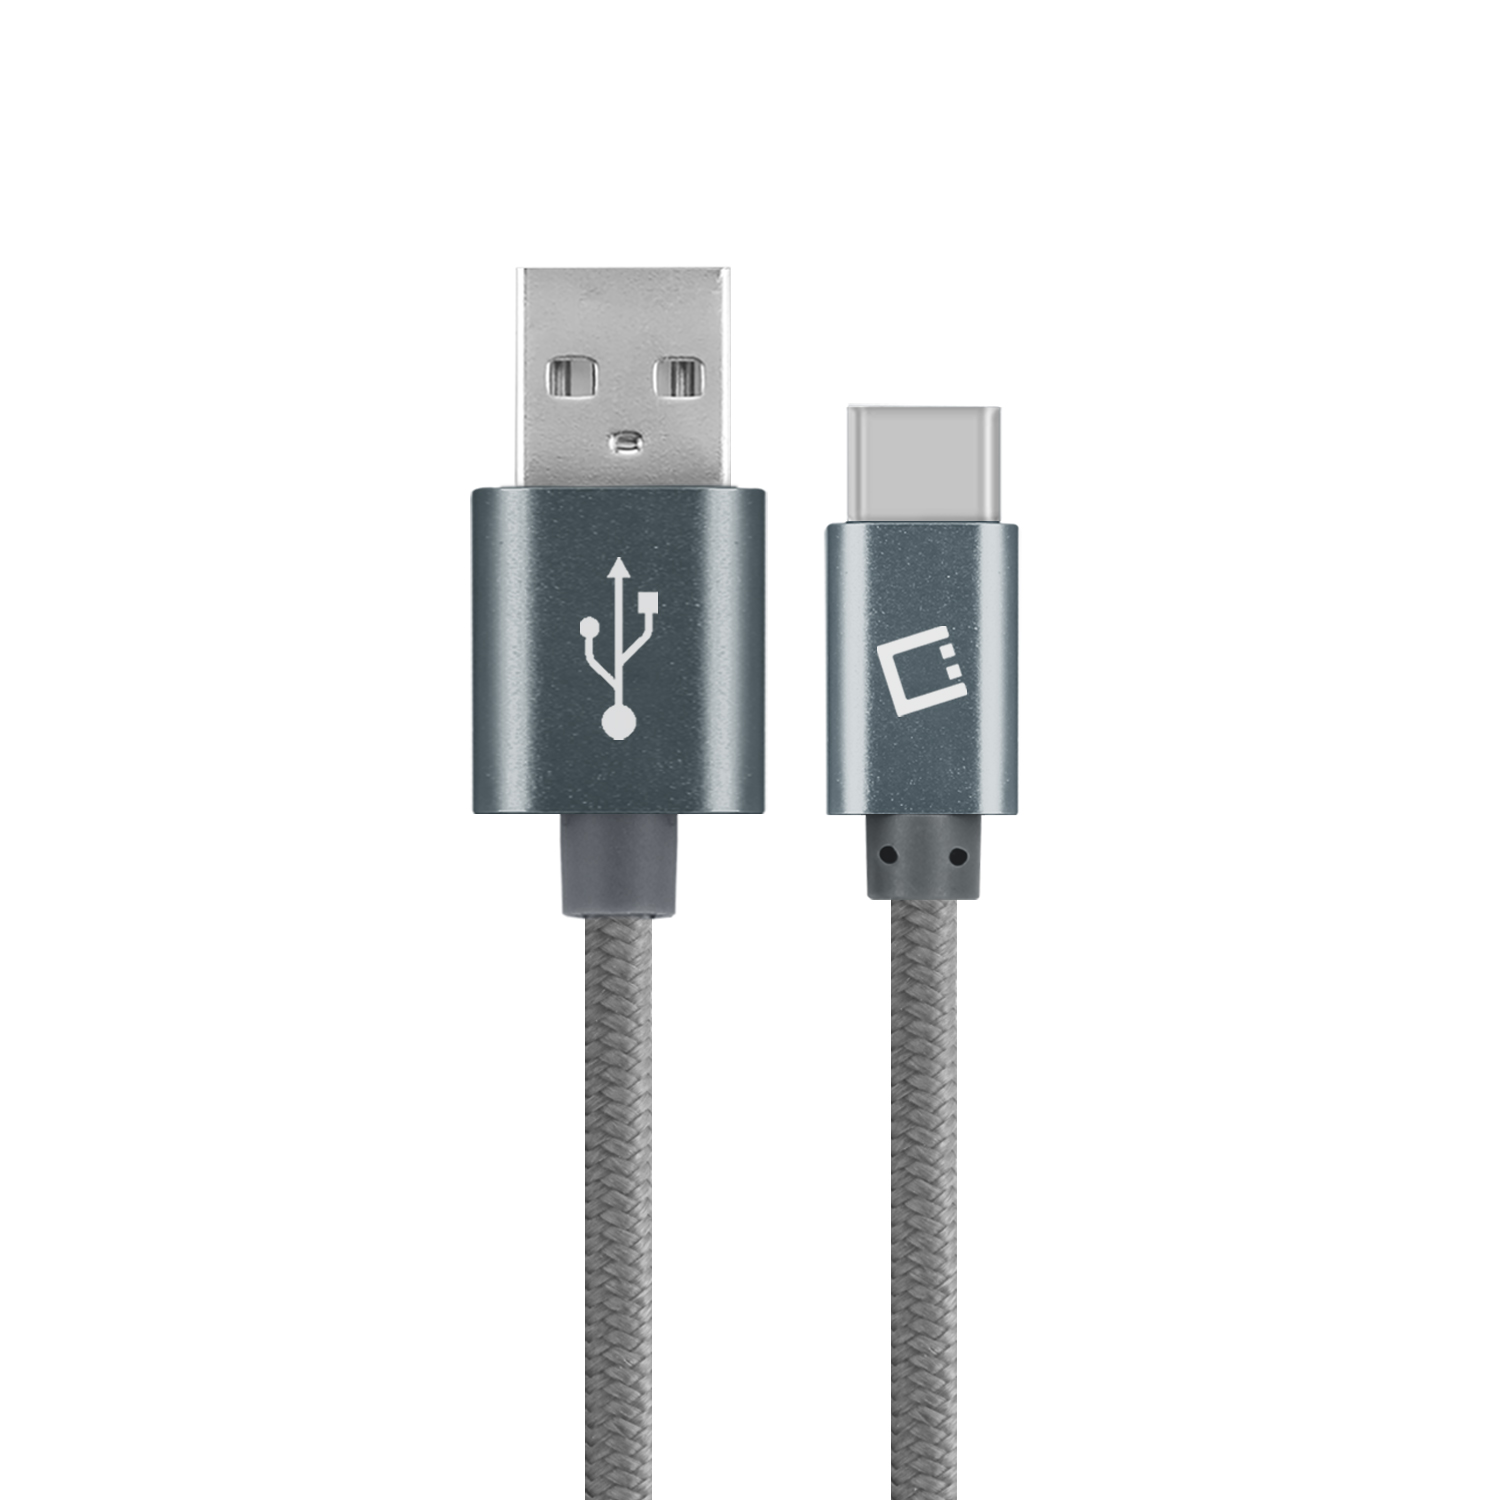 LG Stylo 6 USB Type-C To Type-A Braided Data Power Cable Grey 6ft Braided